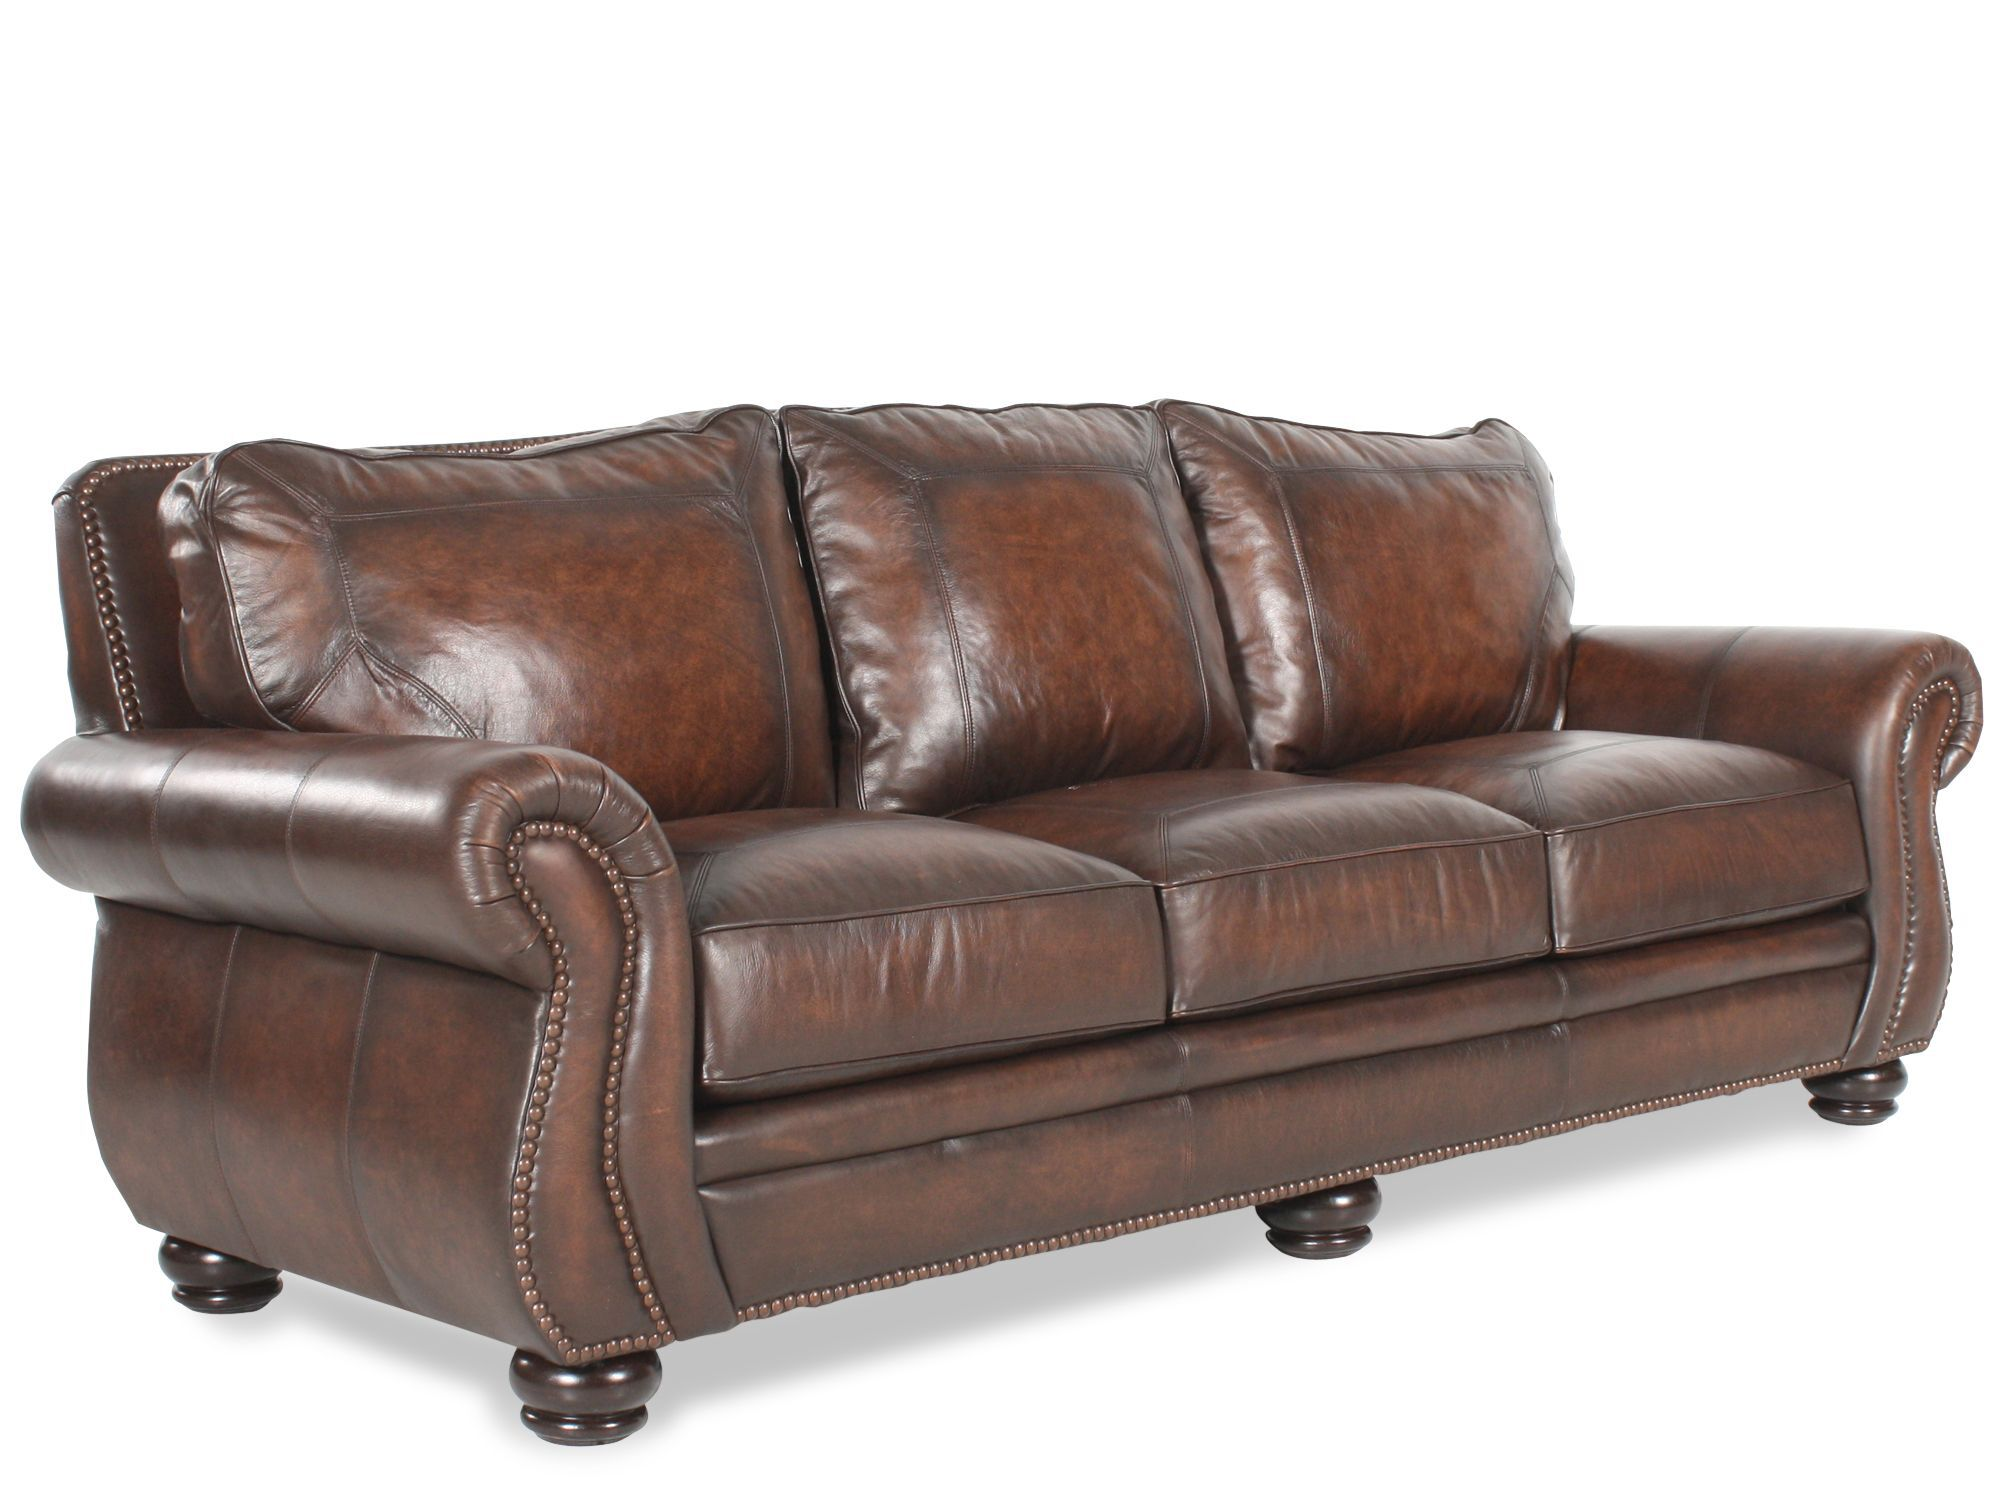 bernhardt vincent sofa reviews full size pull out bed leather furniture